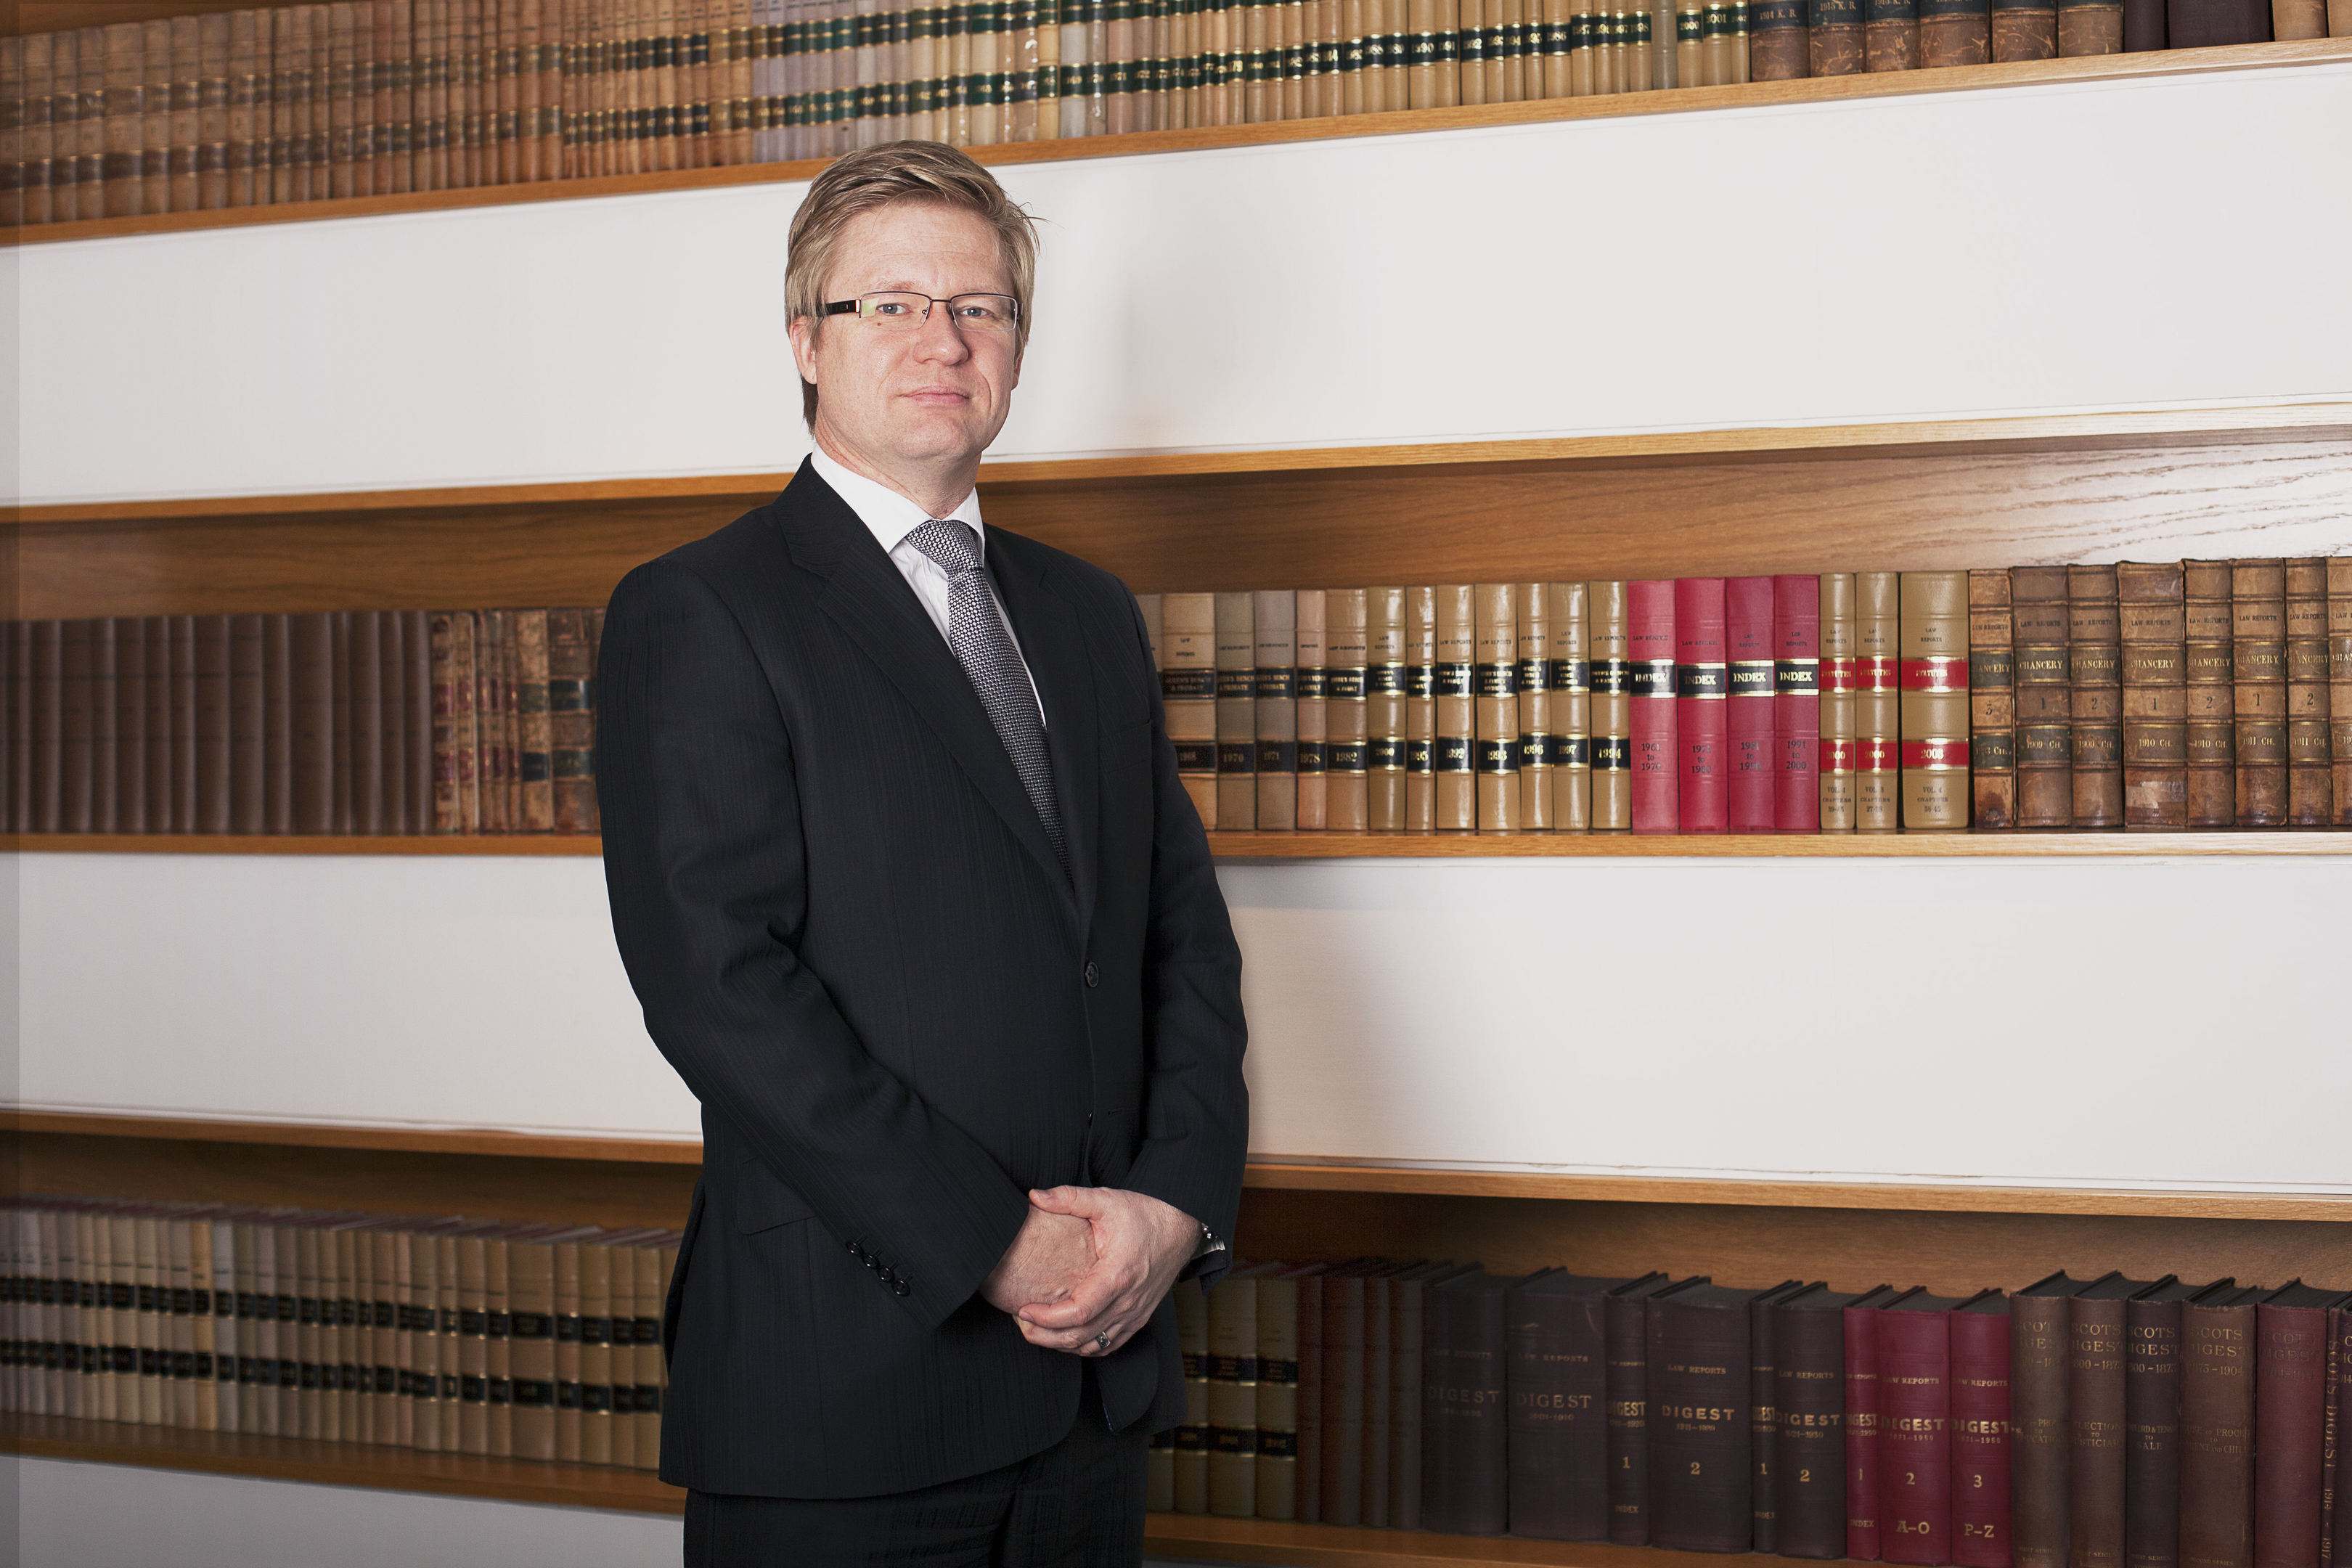 Brian Hemming, partner at Burness Paull